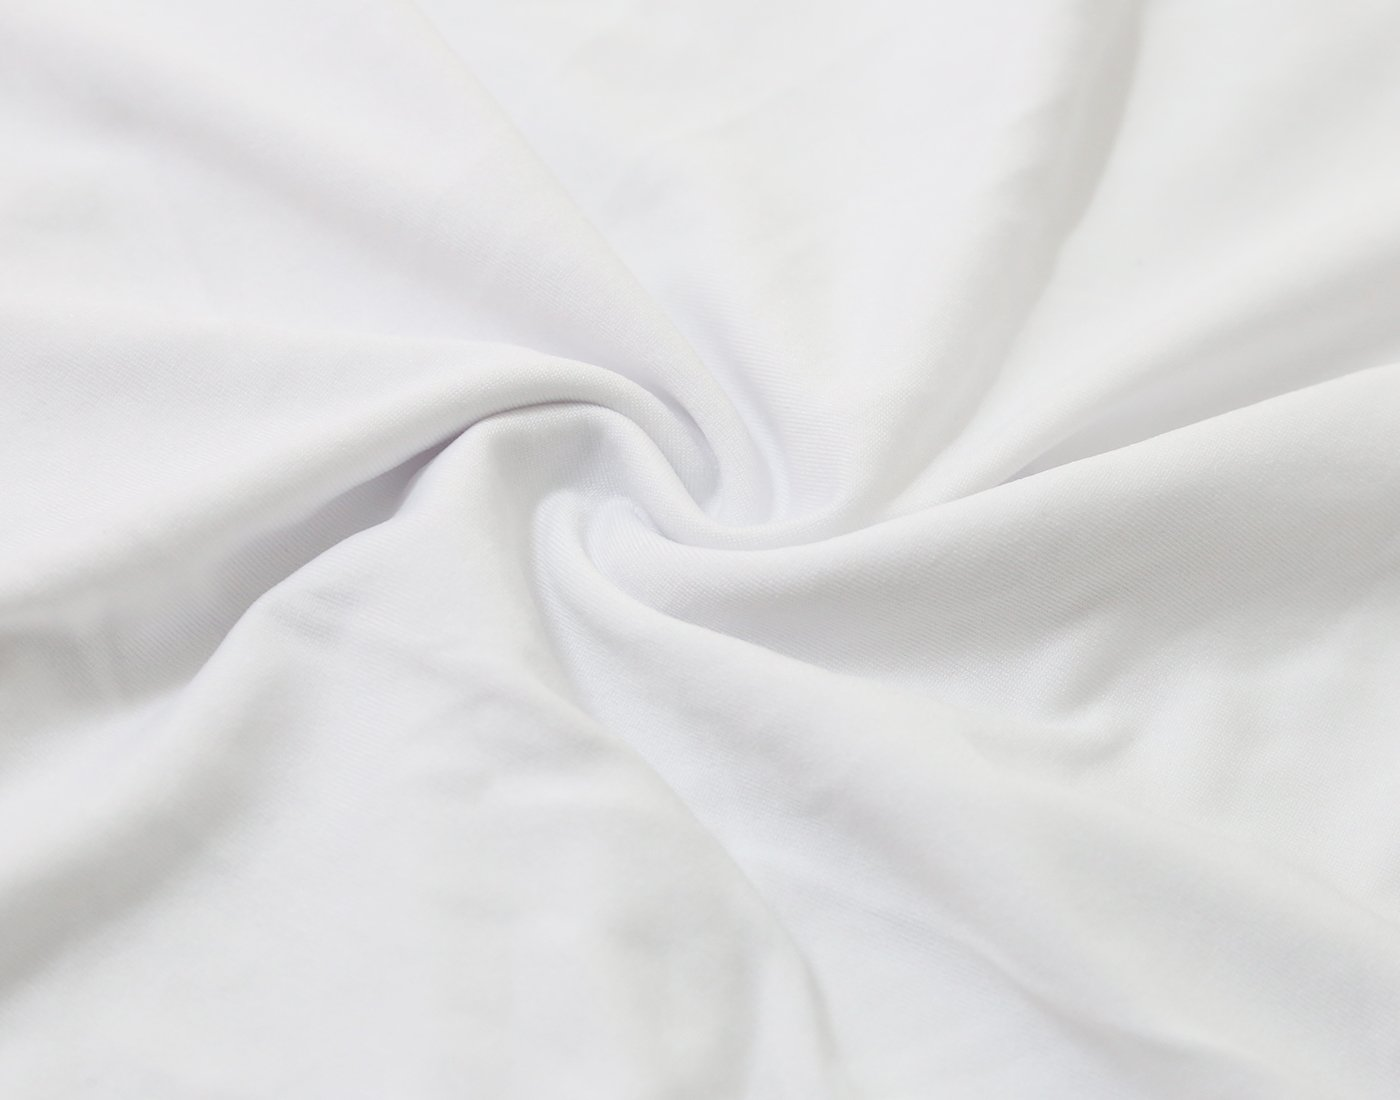 GFCC 6FT White Round Stretch Tablecloth 72-Inch